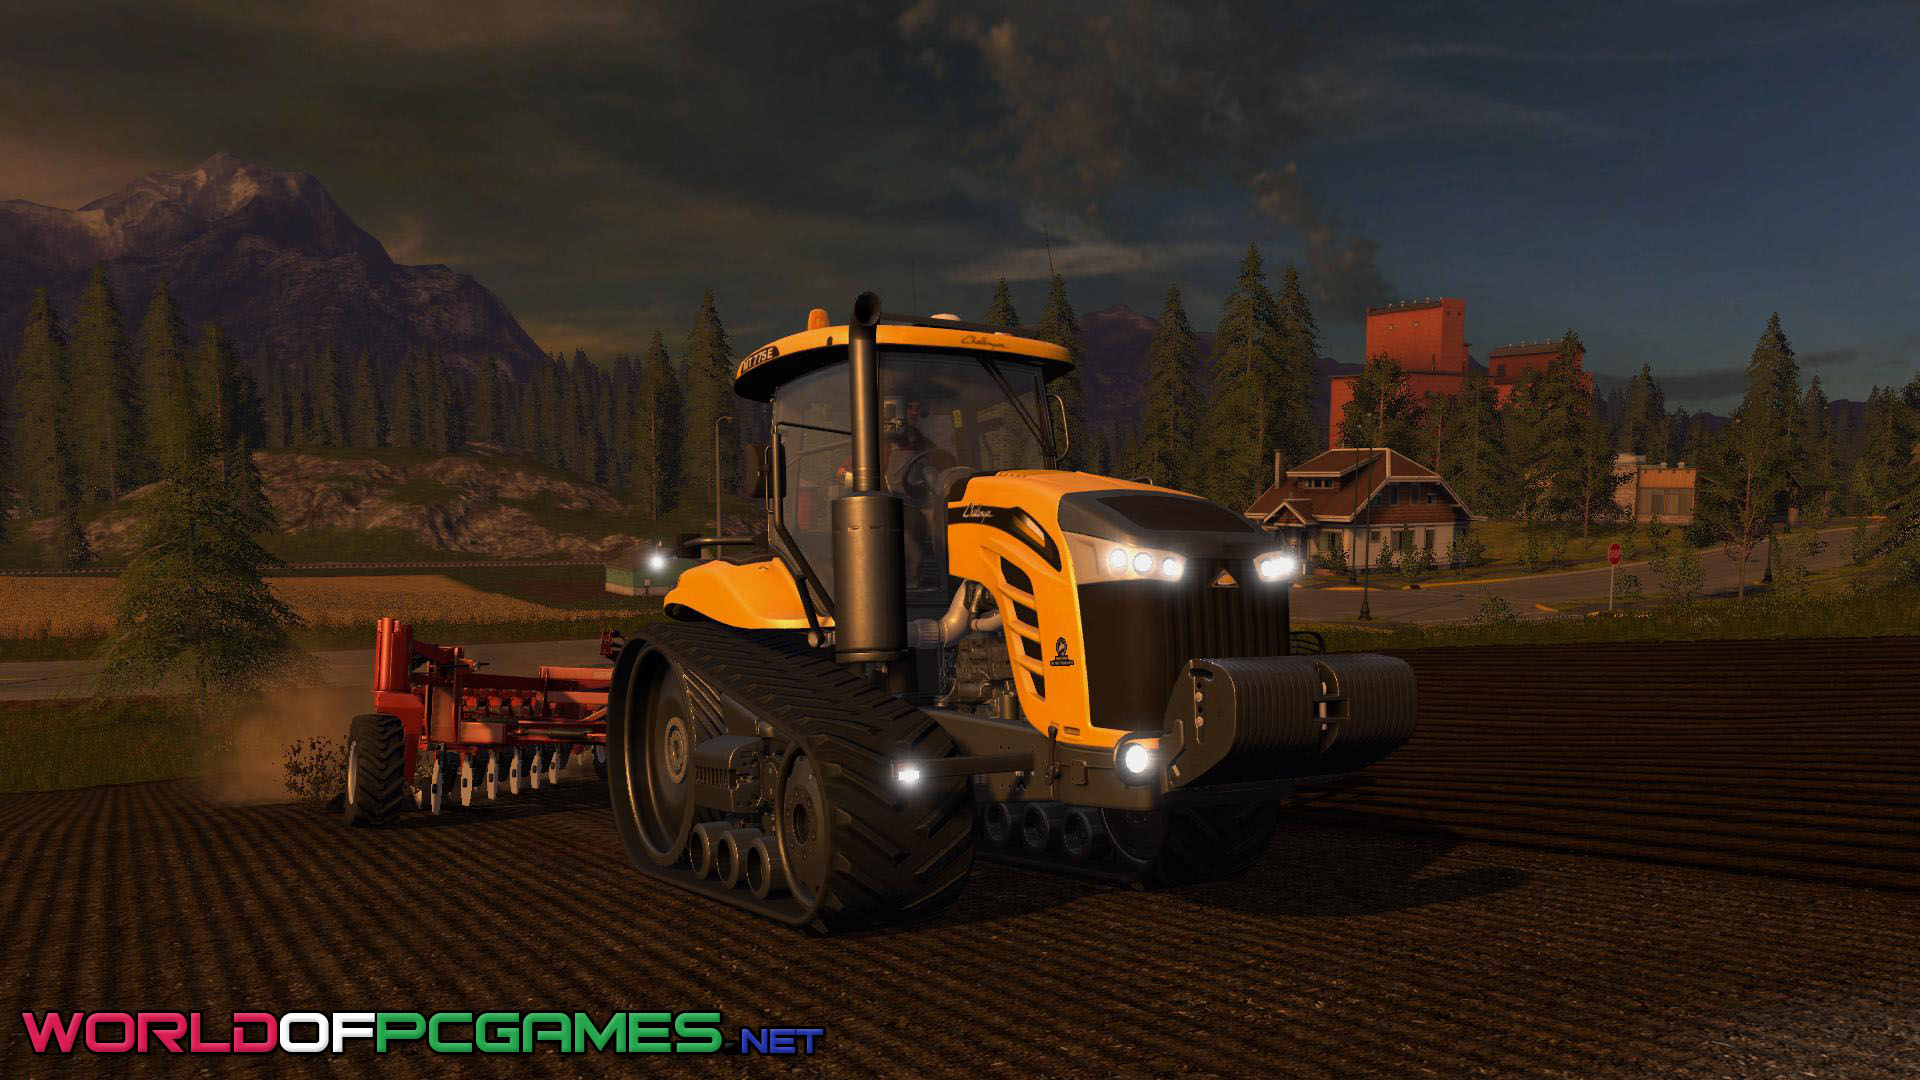 Farming Simulator 2017 Free Download By Worldofpcgames.net 1 - Farming Simulator 17 Download Free